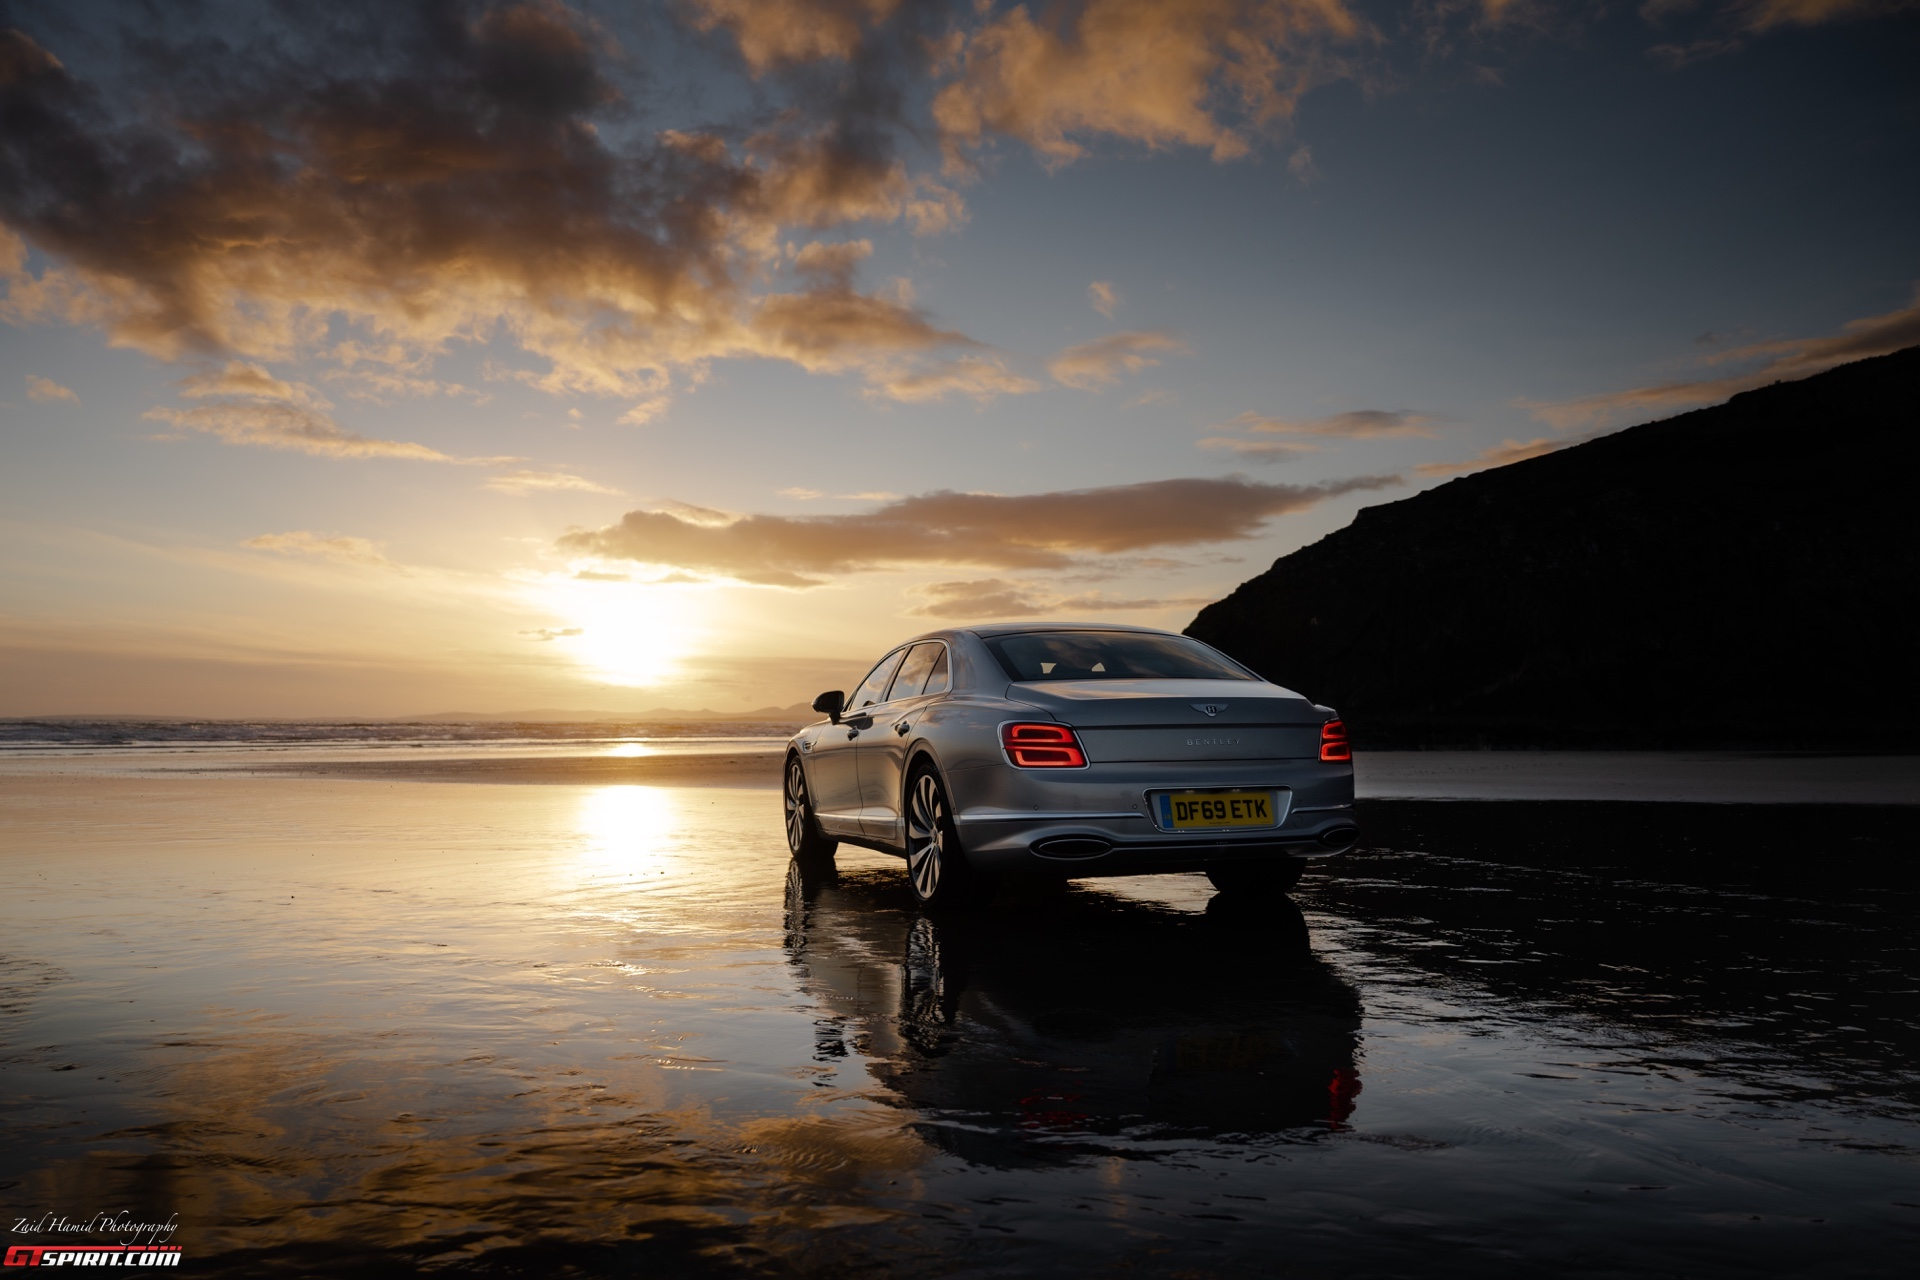 Special Report: Exploring The UK In The 2020 Bentley Flying Spur